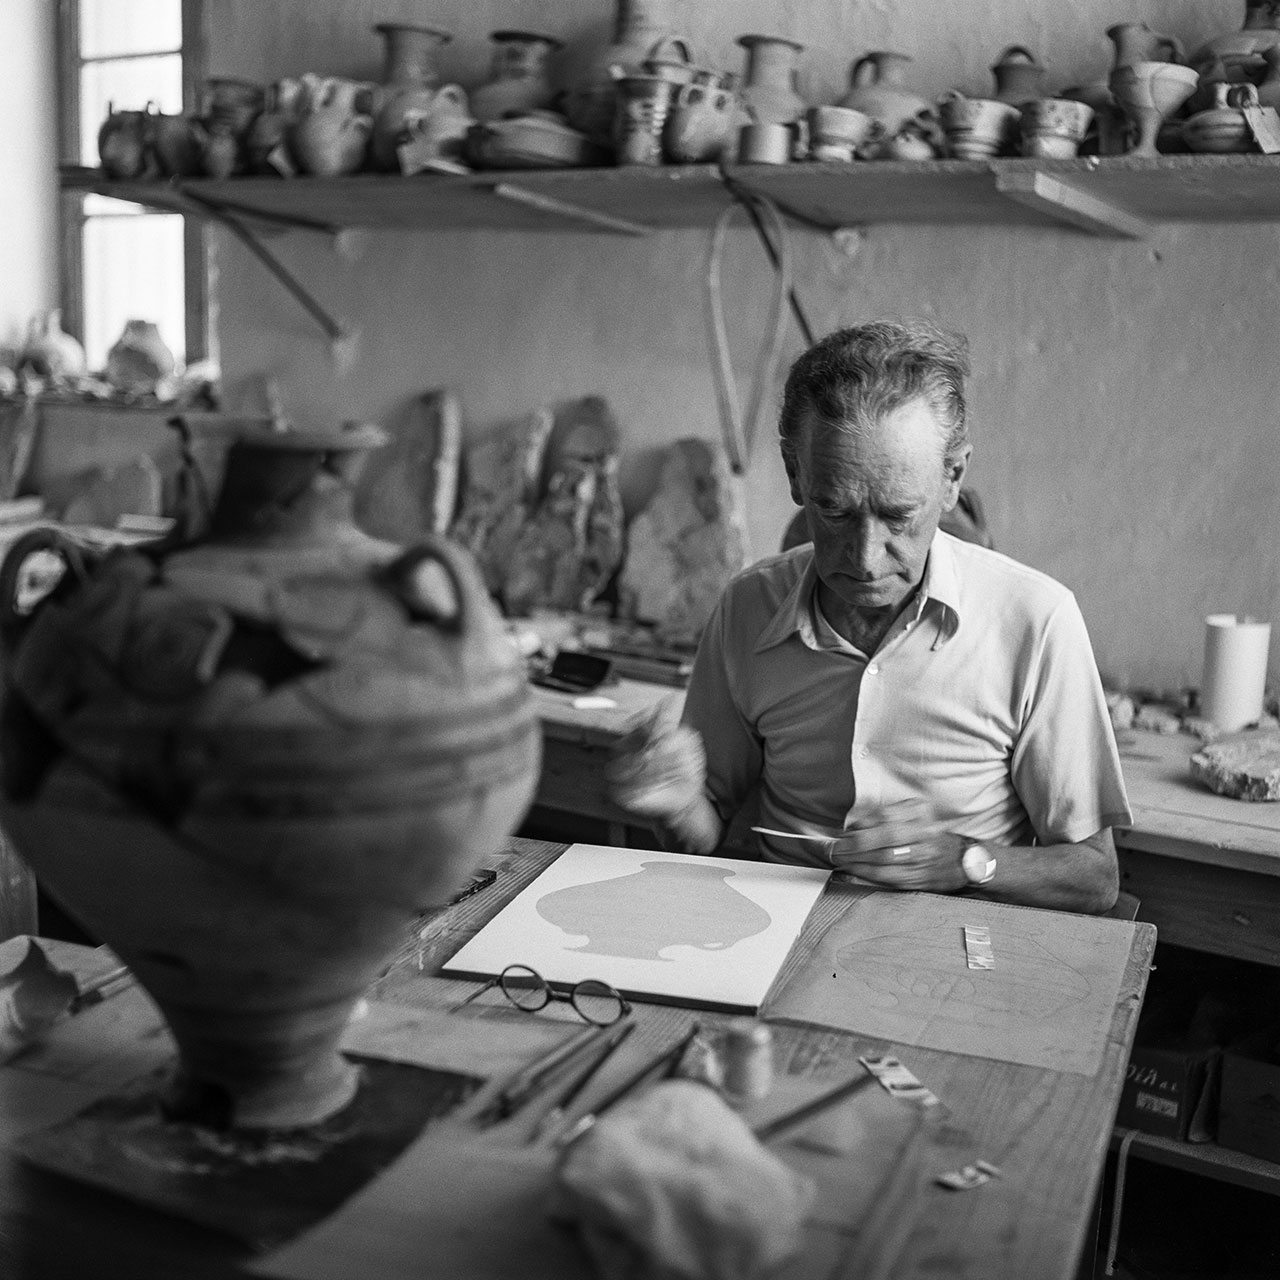 Piet de Jong working at Pylos 1955. Photo © Robert McCabe.